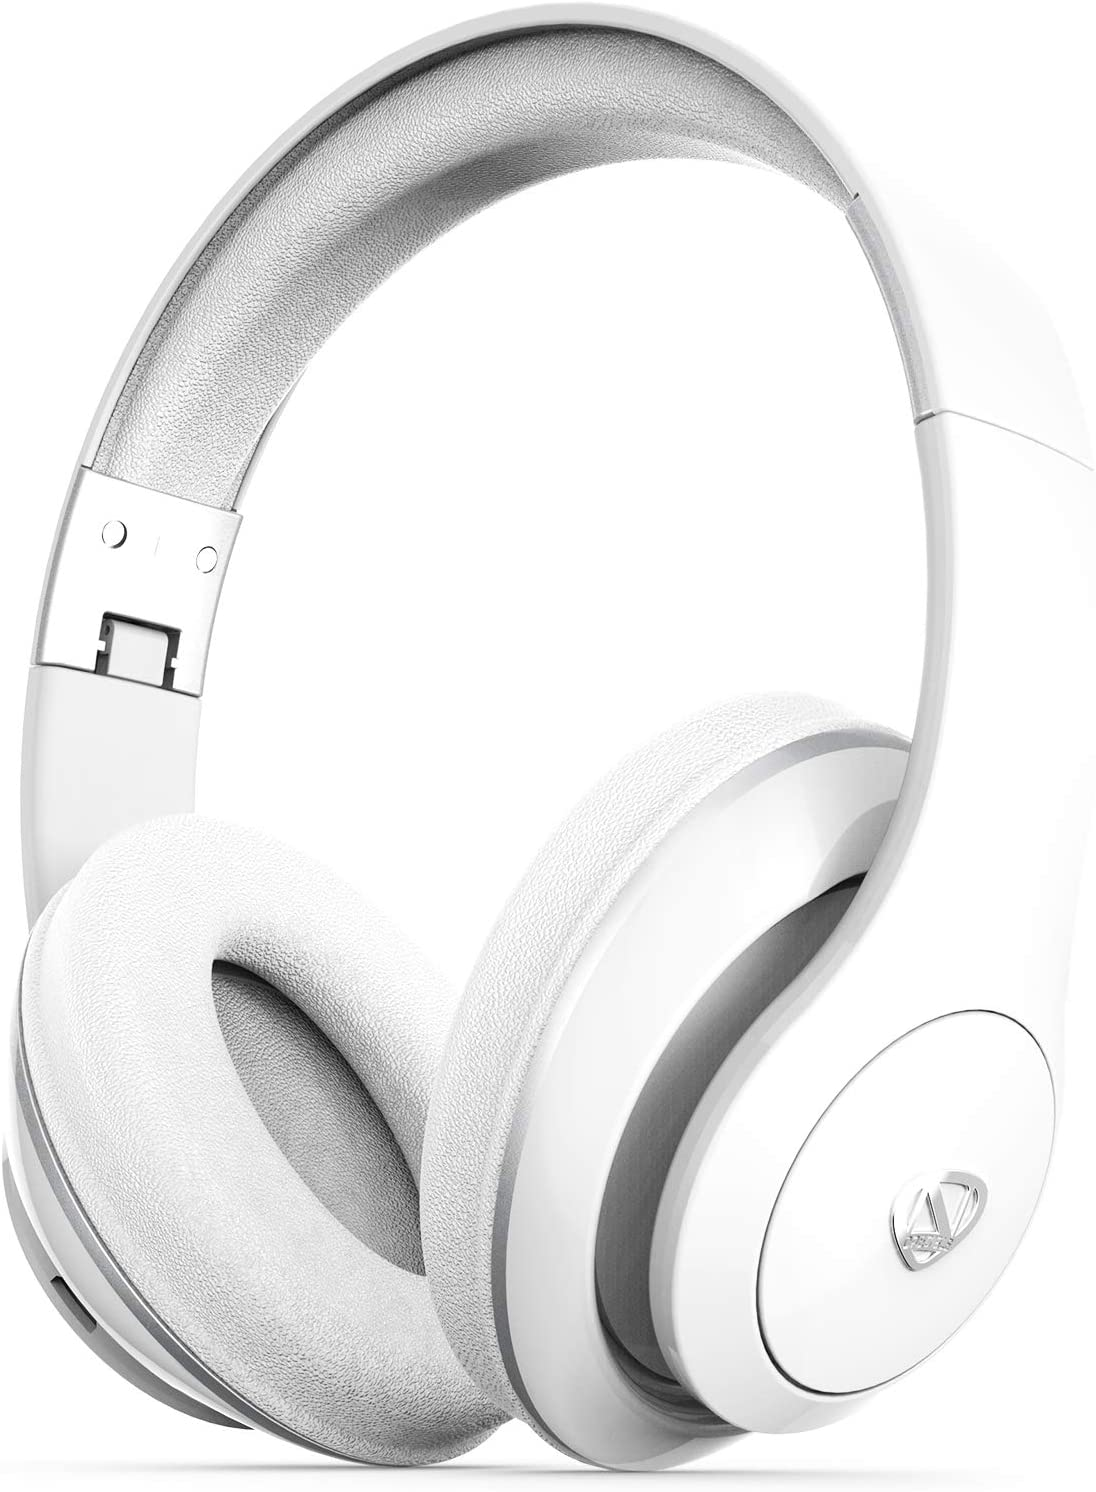 NCredible1 Bluetooth Wireless Headphones, Hi-Fi Stereo Tuned by Nick Cannon, Portable Foldable Headset, Adjustable Padded Headband, Soft Ear Cushions, Built-in Mic, Ear Cup Controls (White)